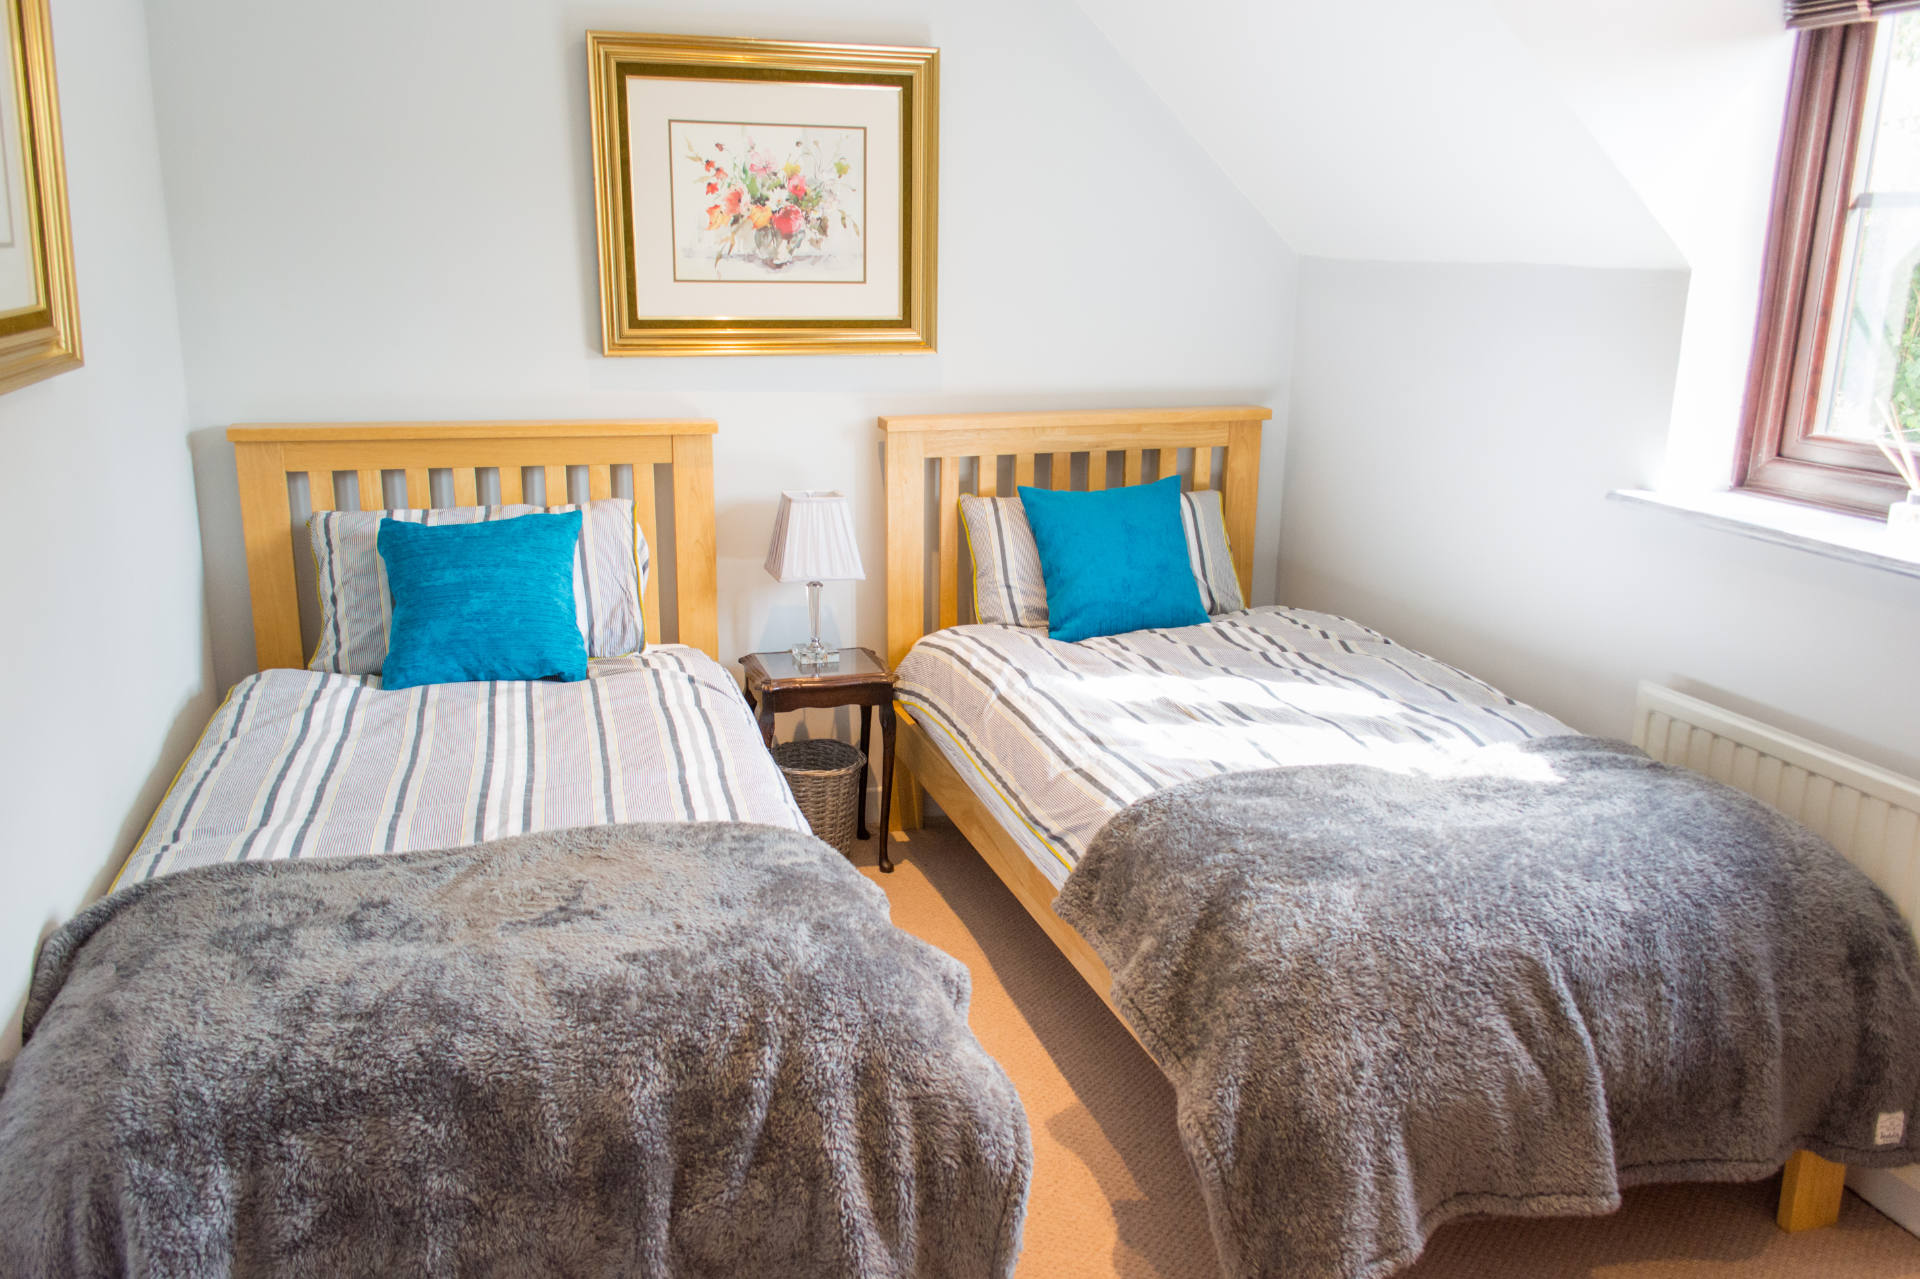 Twin bedroom, with dark grey blankets over the end of the beds and small blue decorative pillows.